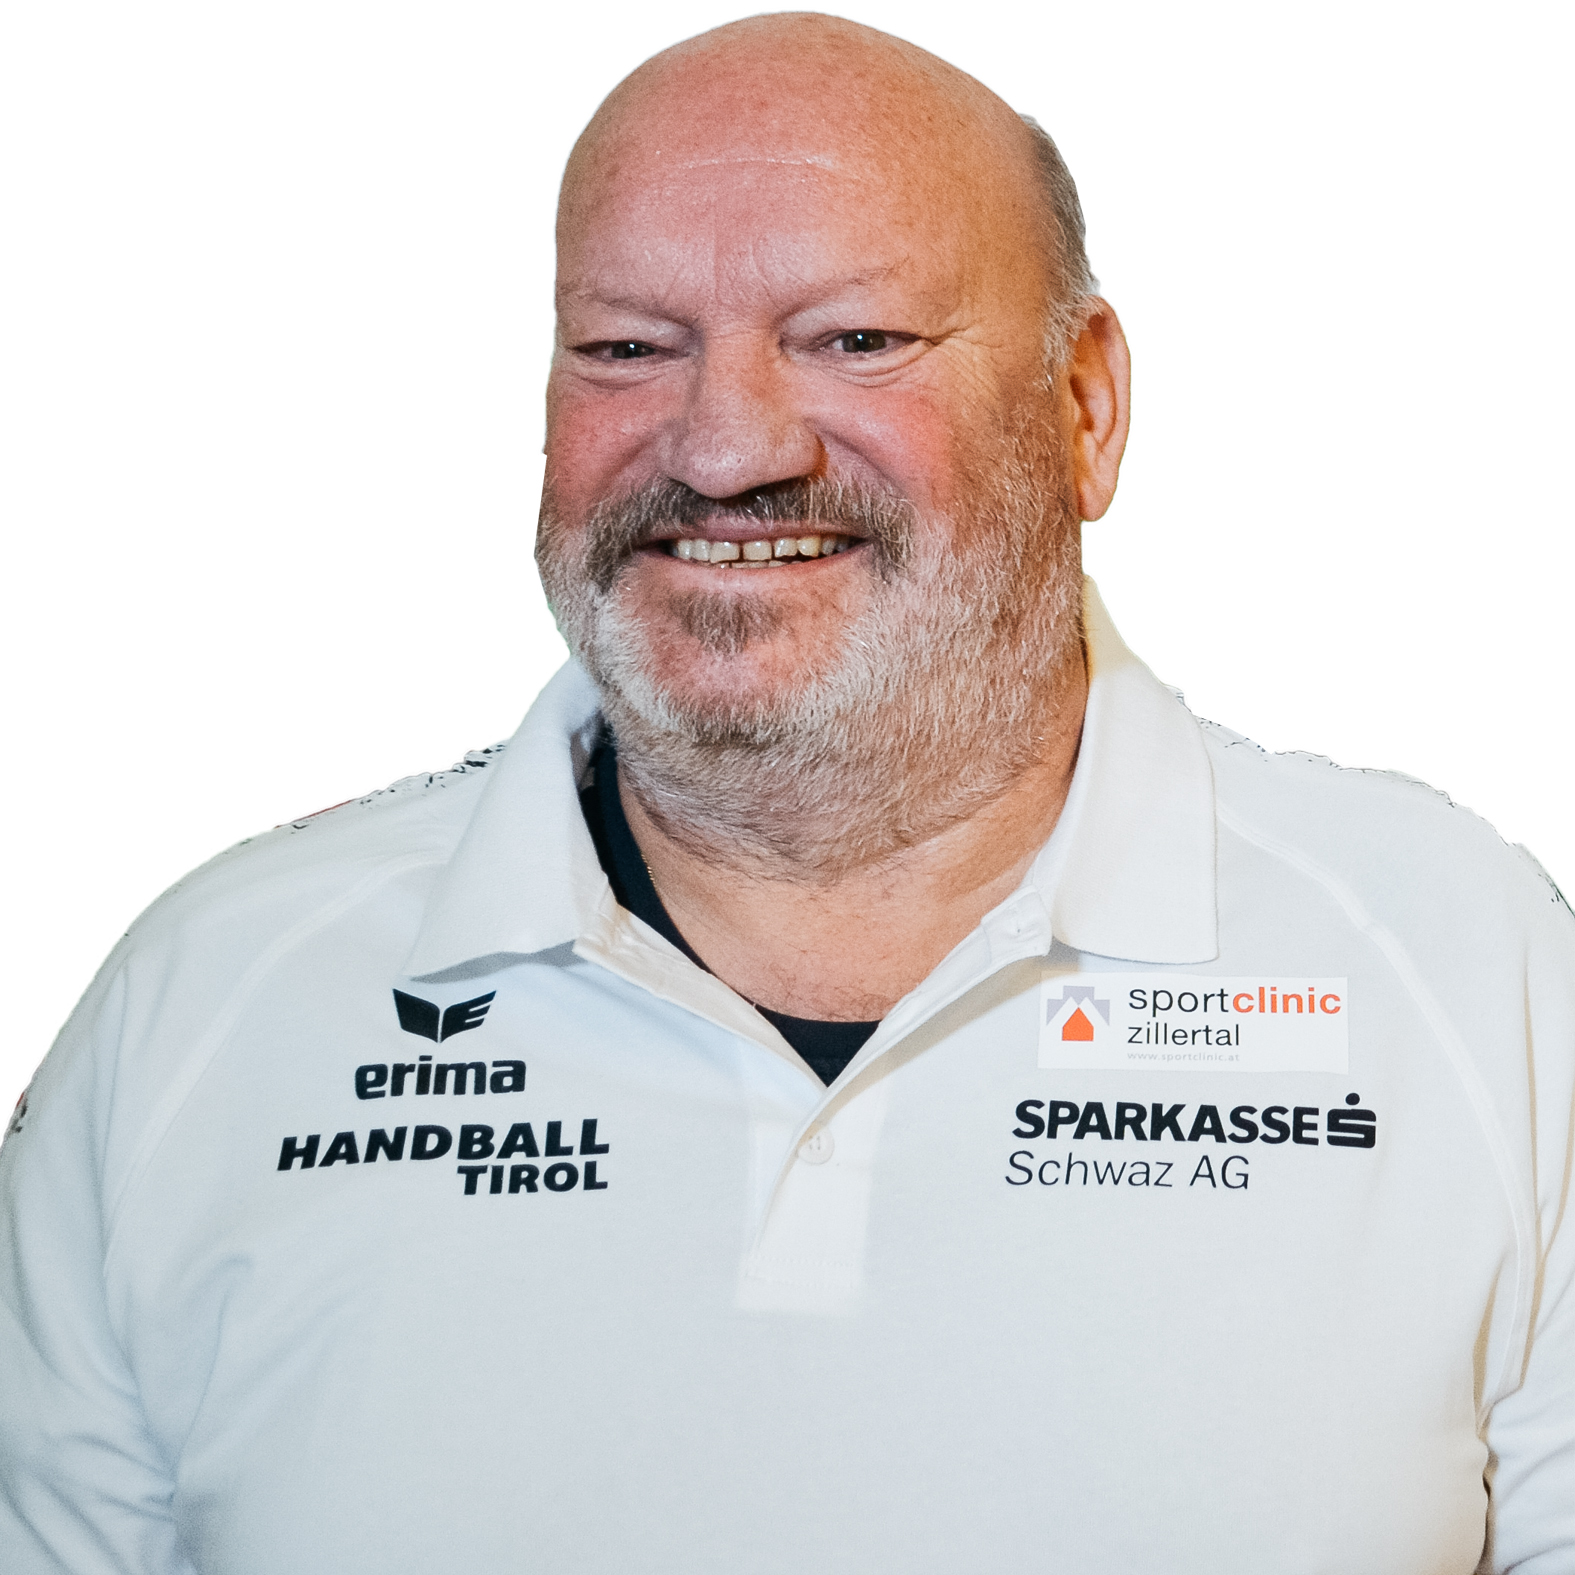 Frank Bergemann |GER| Headcoach | 20.06.1956